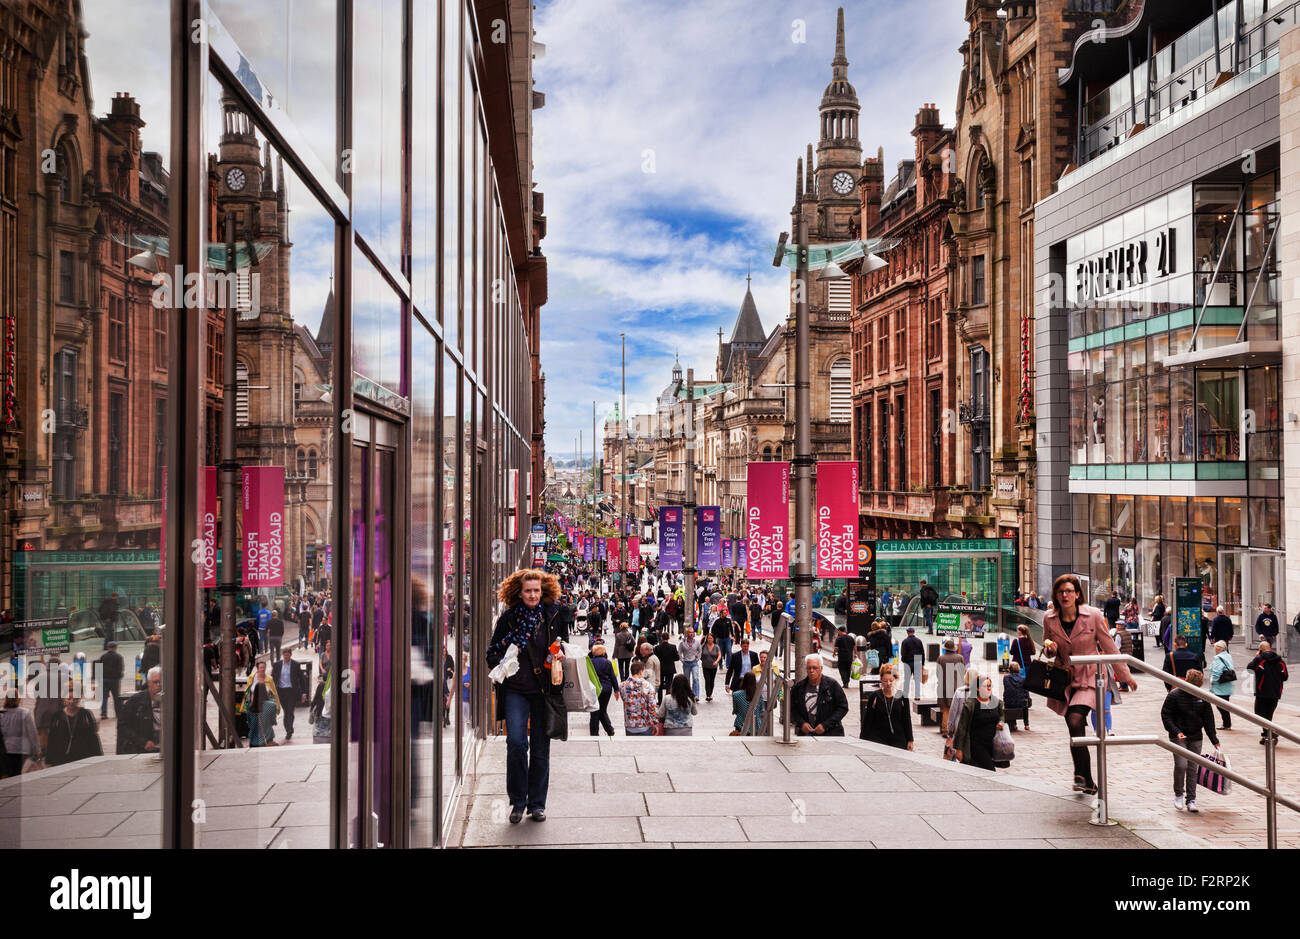 Shopping in Buchanan Street, Glasgow, Scotland, UK. - Stock Image